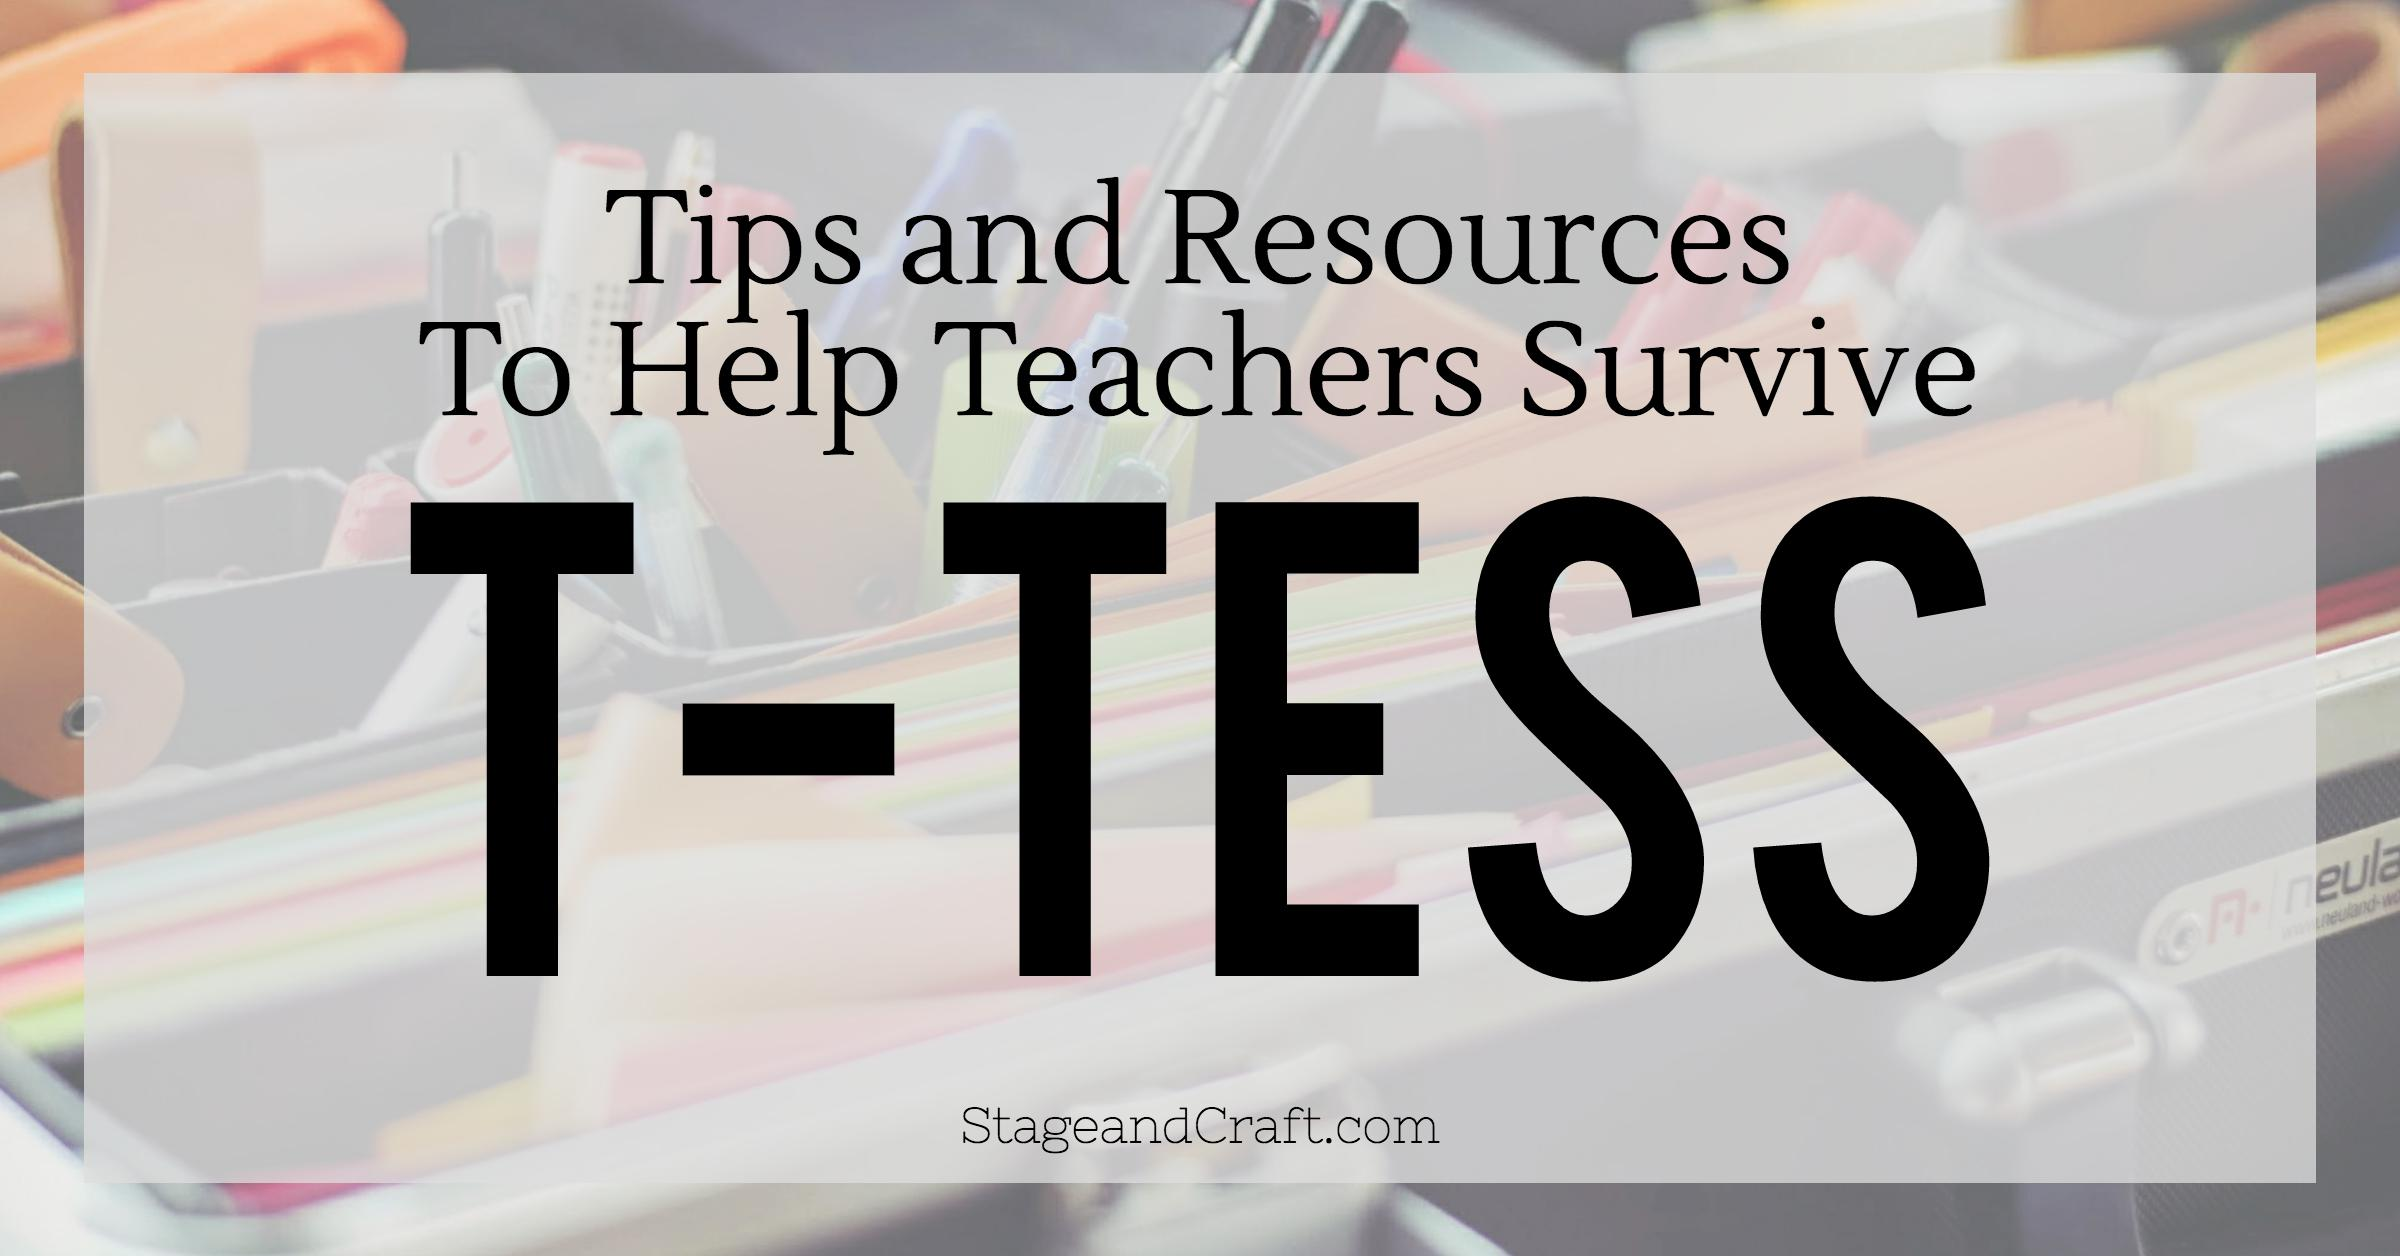 photo relating to T-tess Rubric Printable named T-TESS Critique for Texas Instructors-Moreover a Free of charge Downloadable